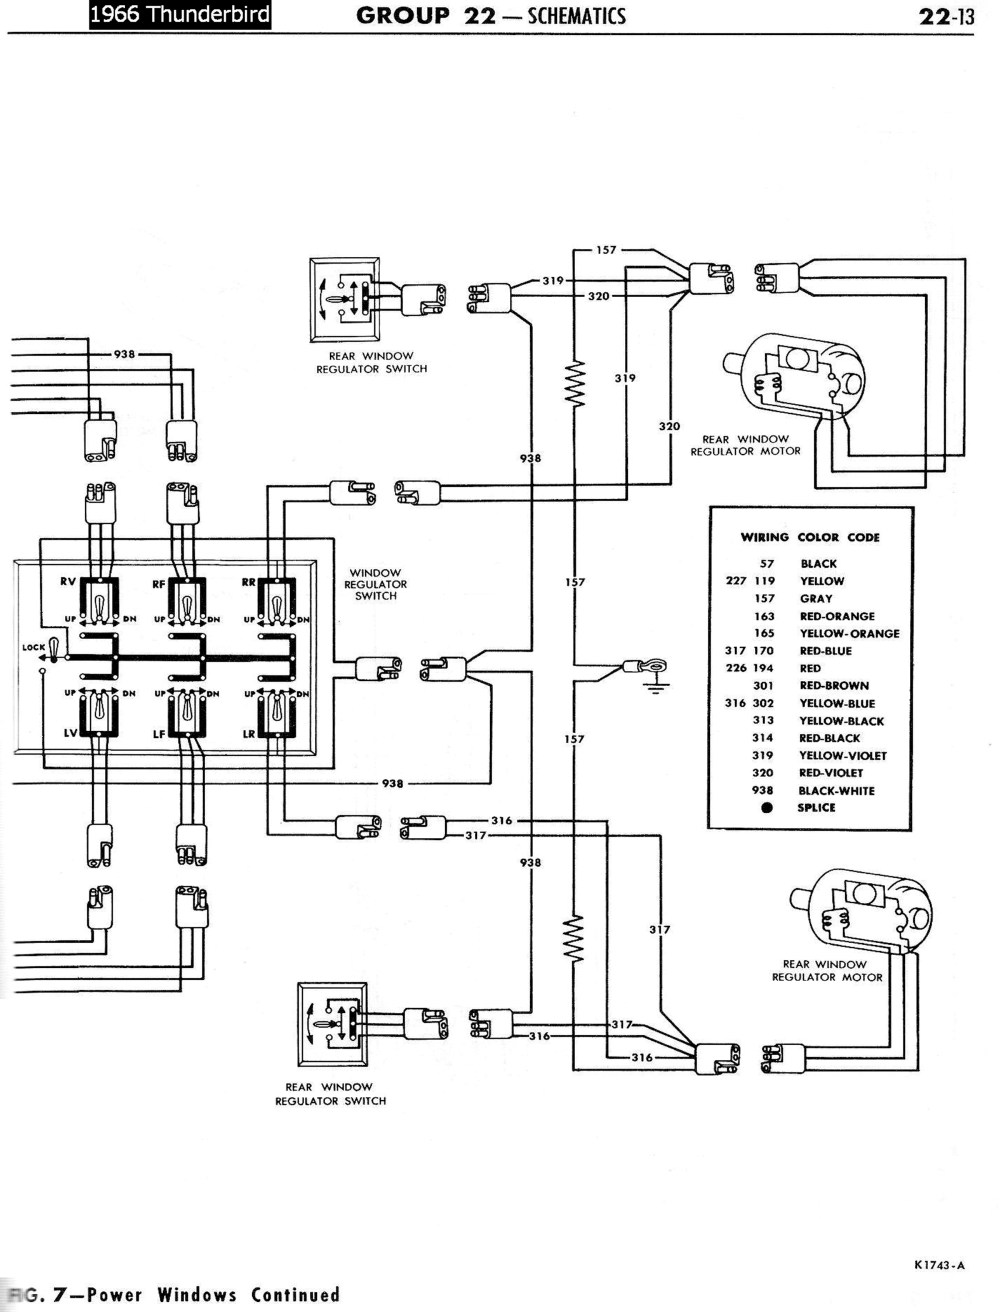 medium resolution of  2002 mustang gt 1965 ford mustang tail lights wiring diagram 1965 mustang